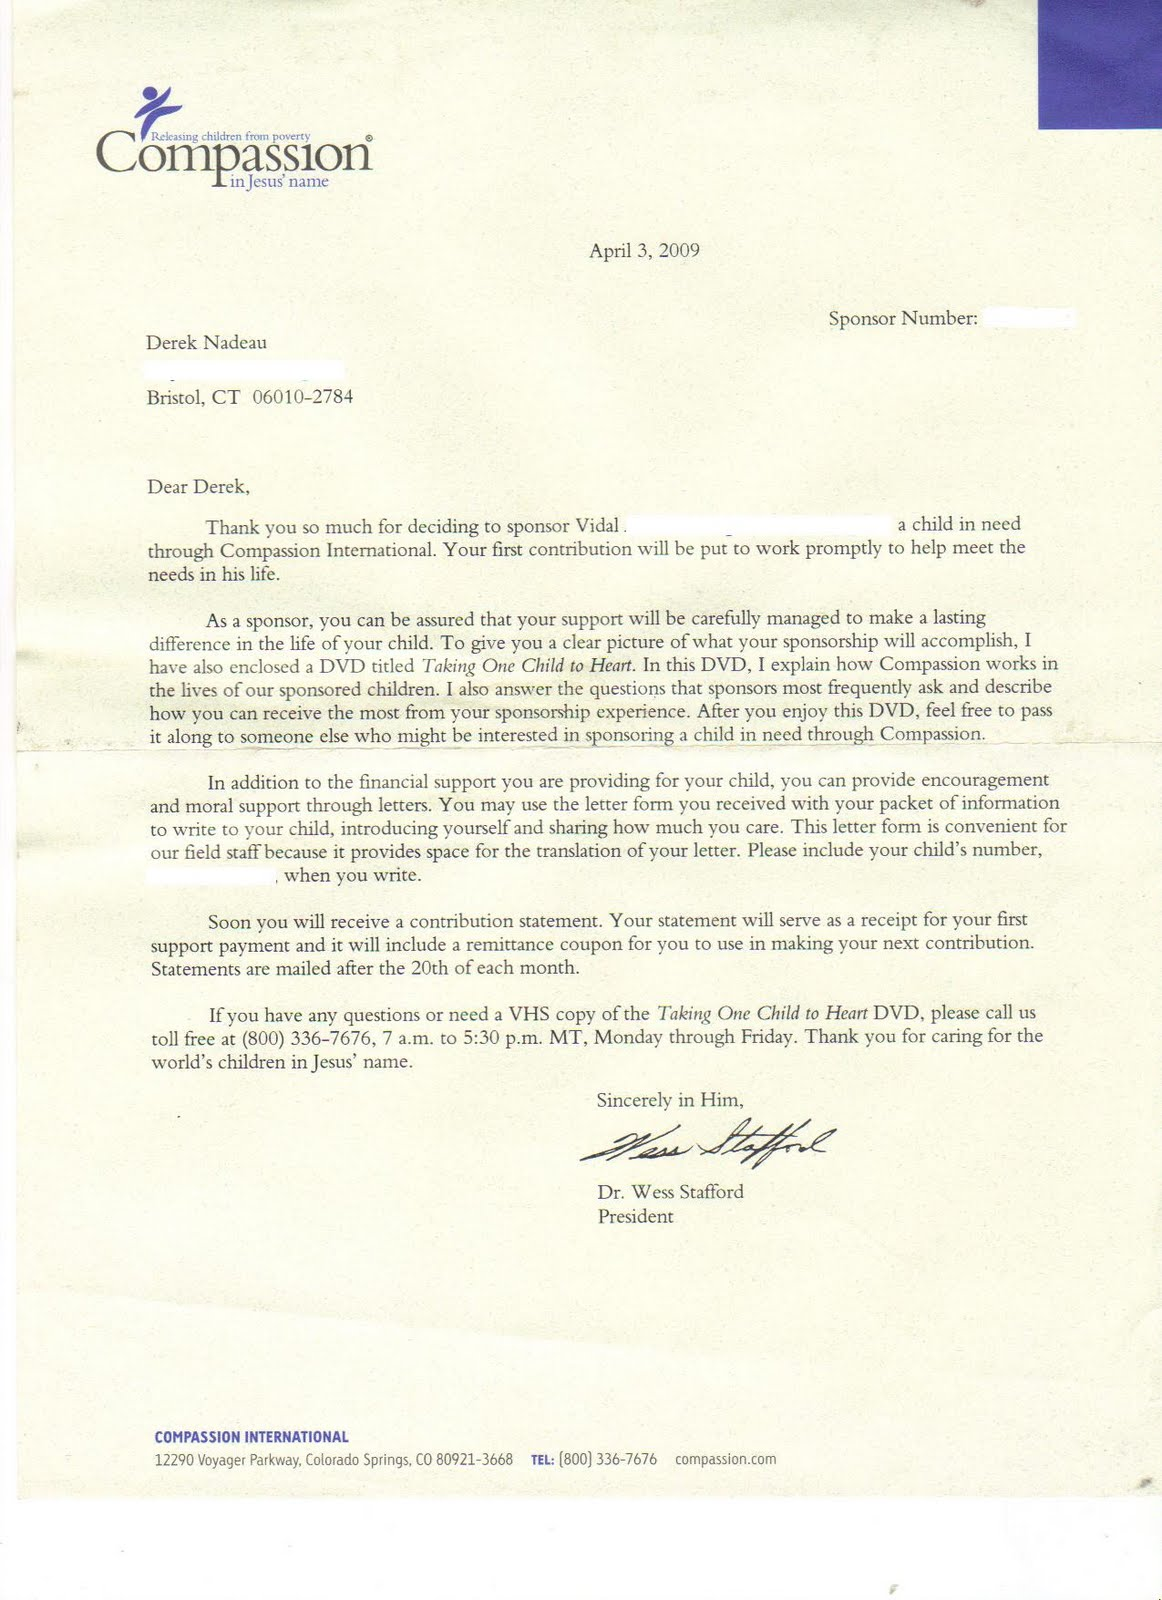 welcome letter from compassion international on april 3 2009